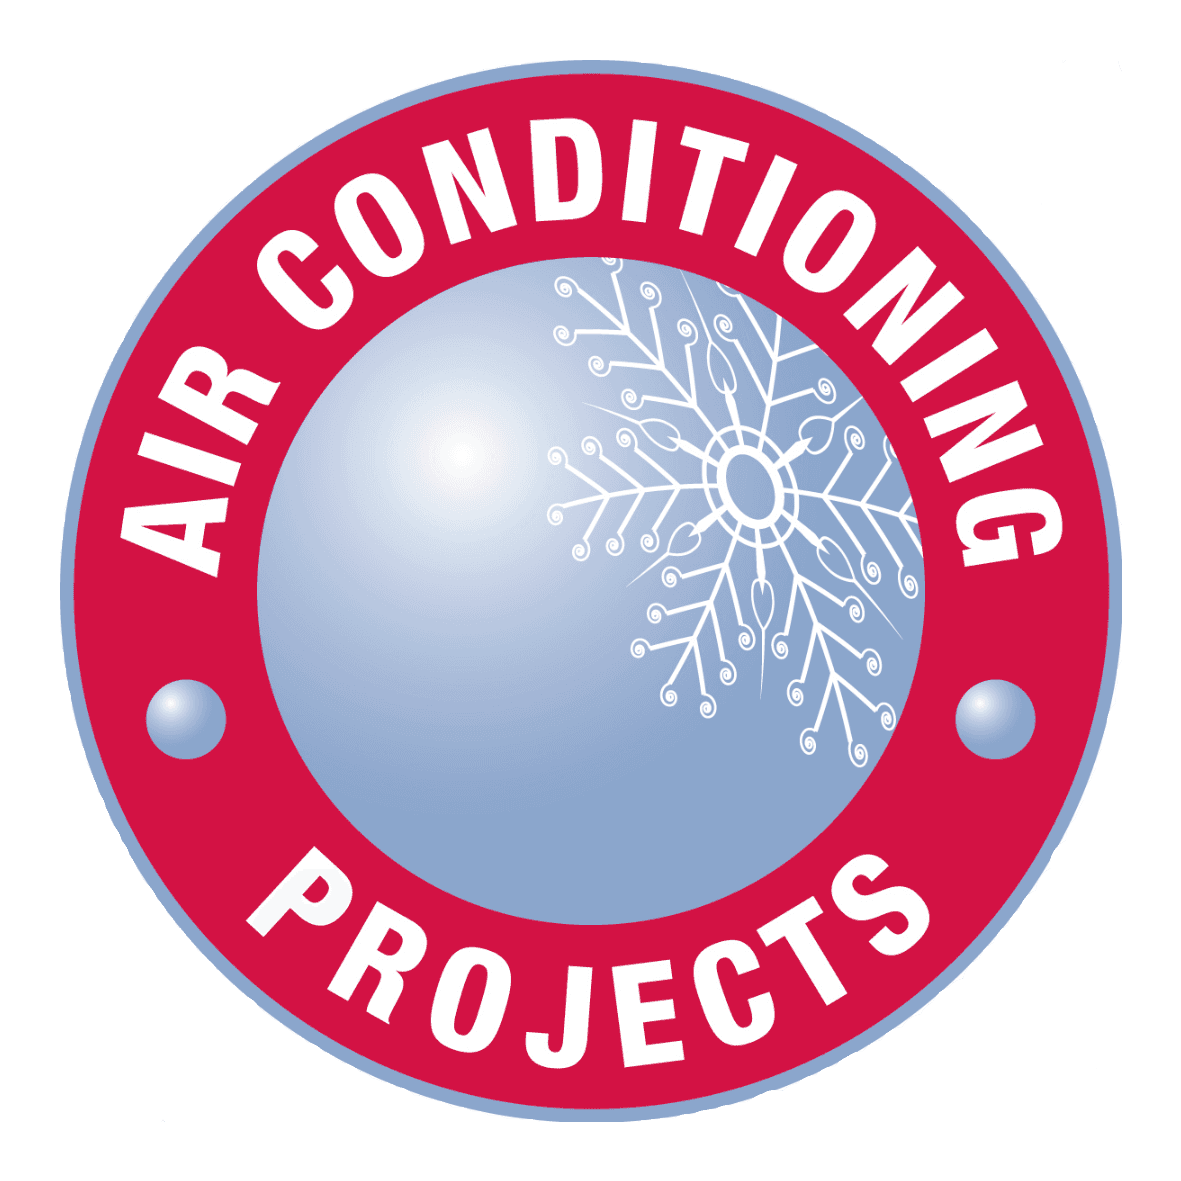 Air Conditioning projects logo